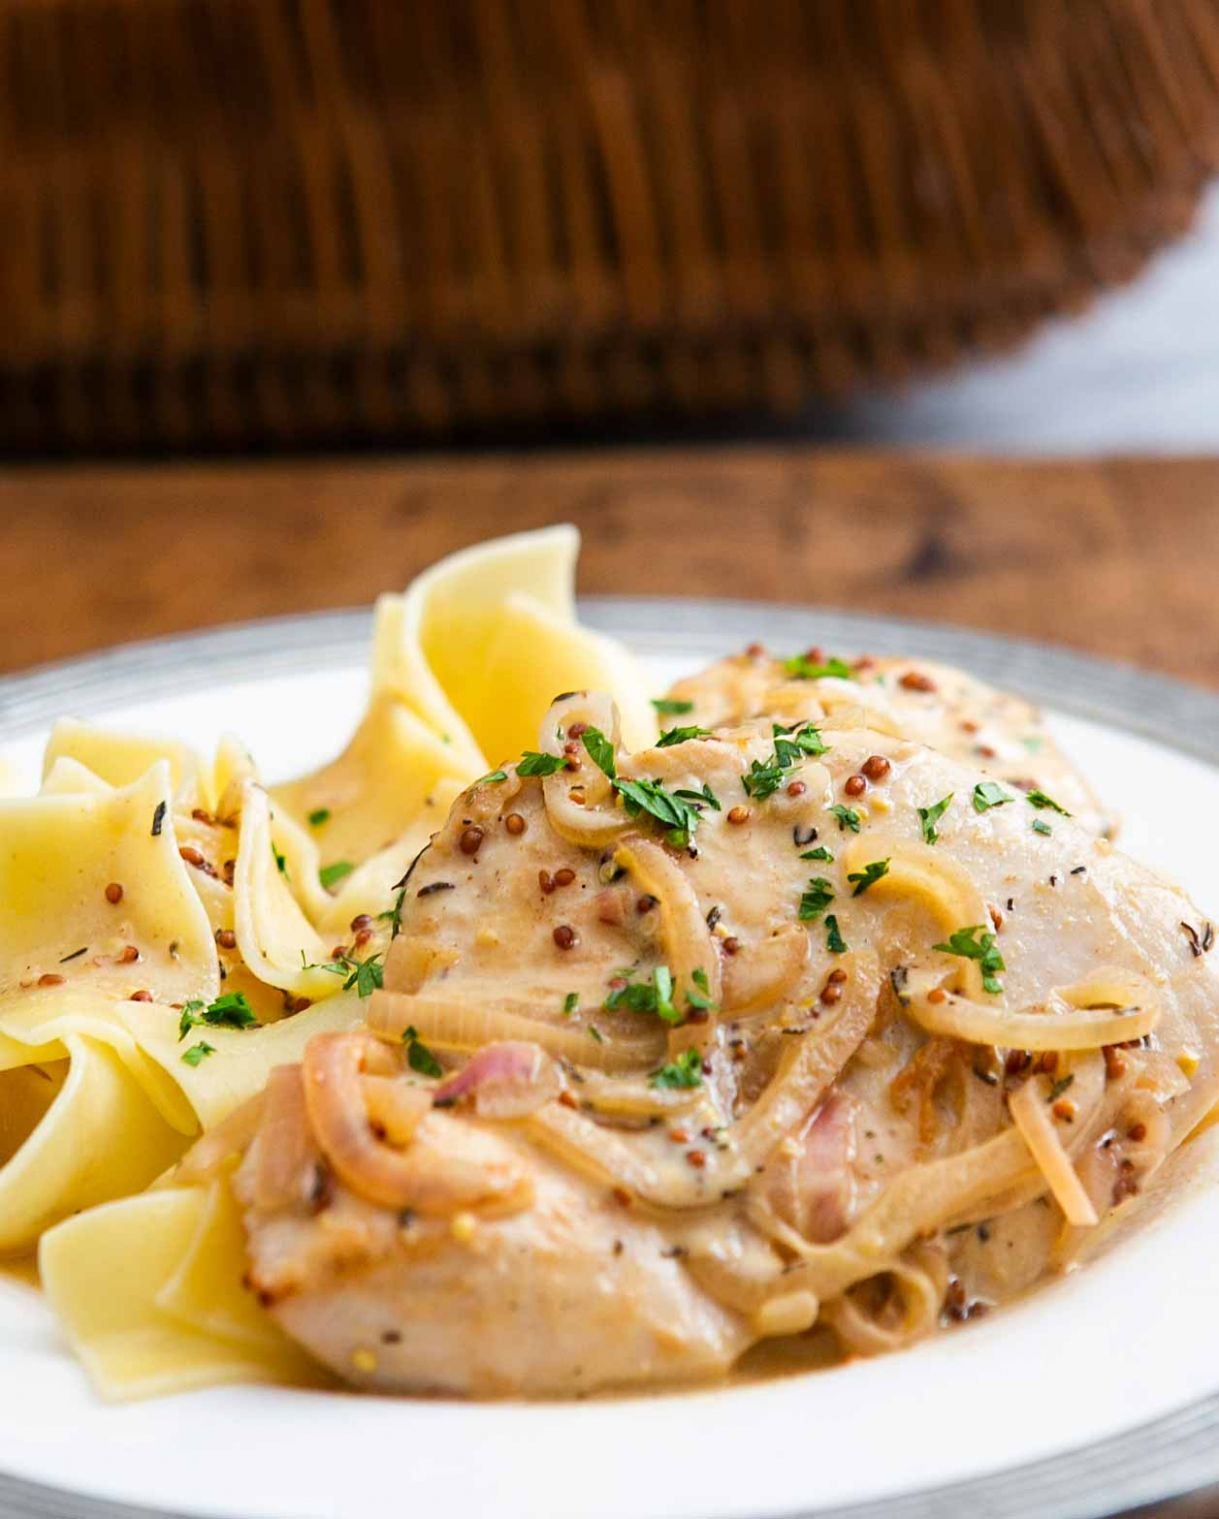 Creamy Dijon Mustard Chicken - Recipe Chicken Breast Dijon Mustard